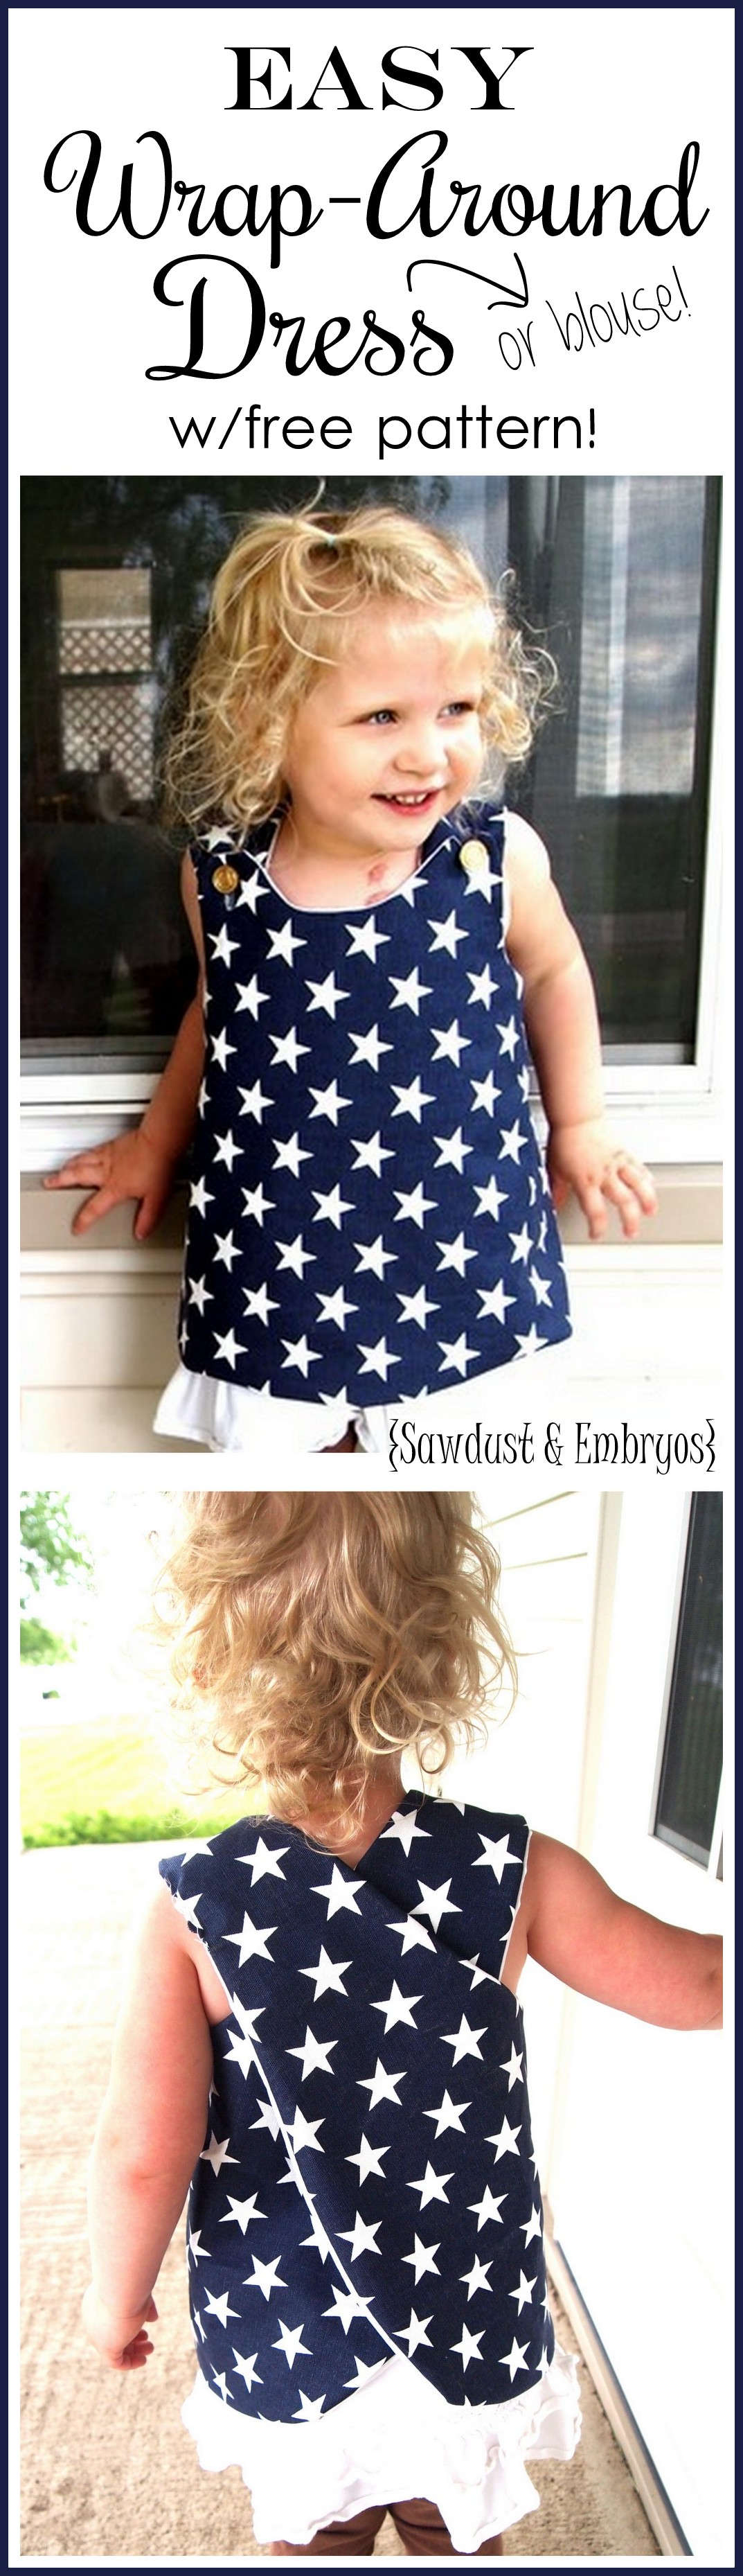 69fd6e132170 Suuuper simple wrap-around dress tutorial... so cute for toddlers! Includes